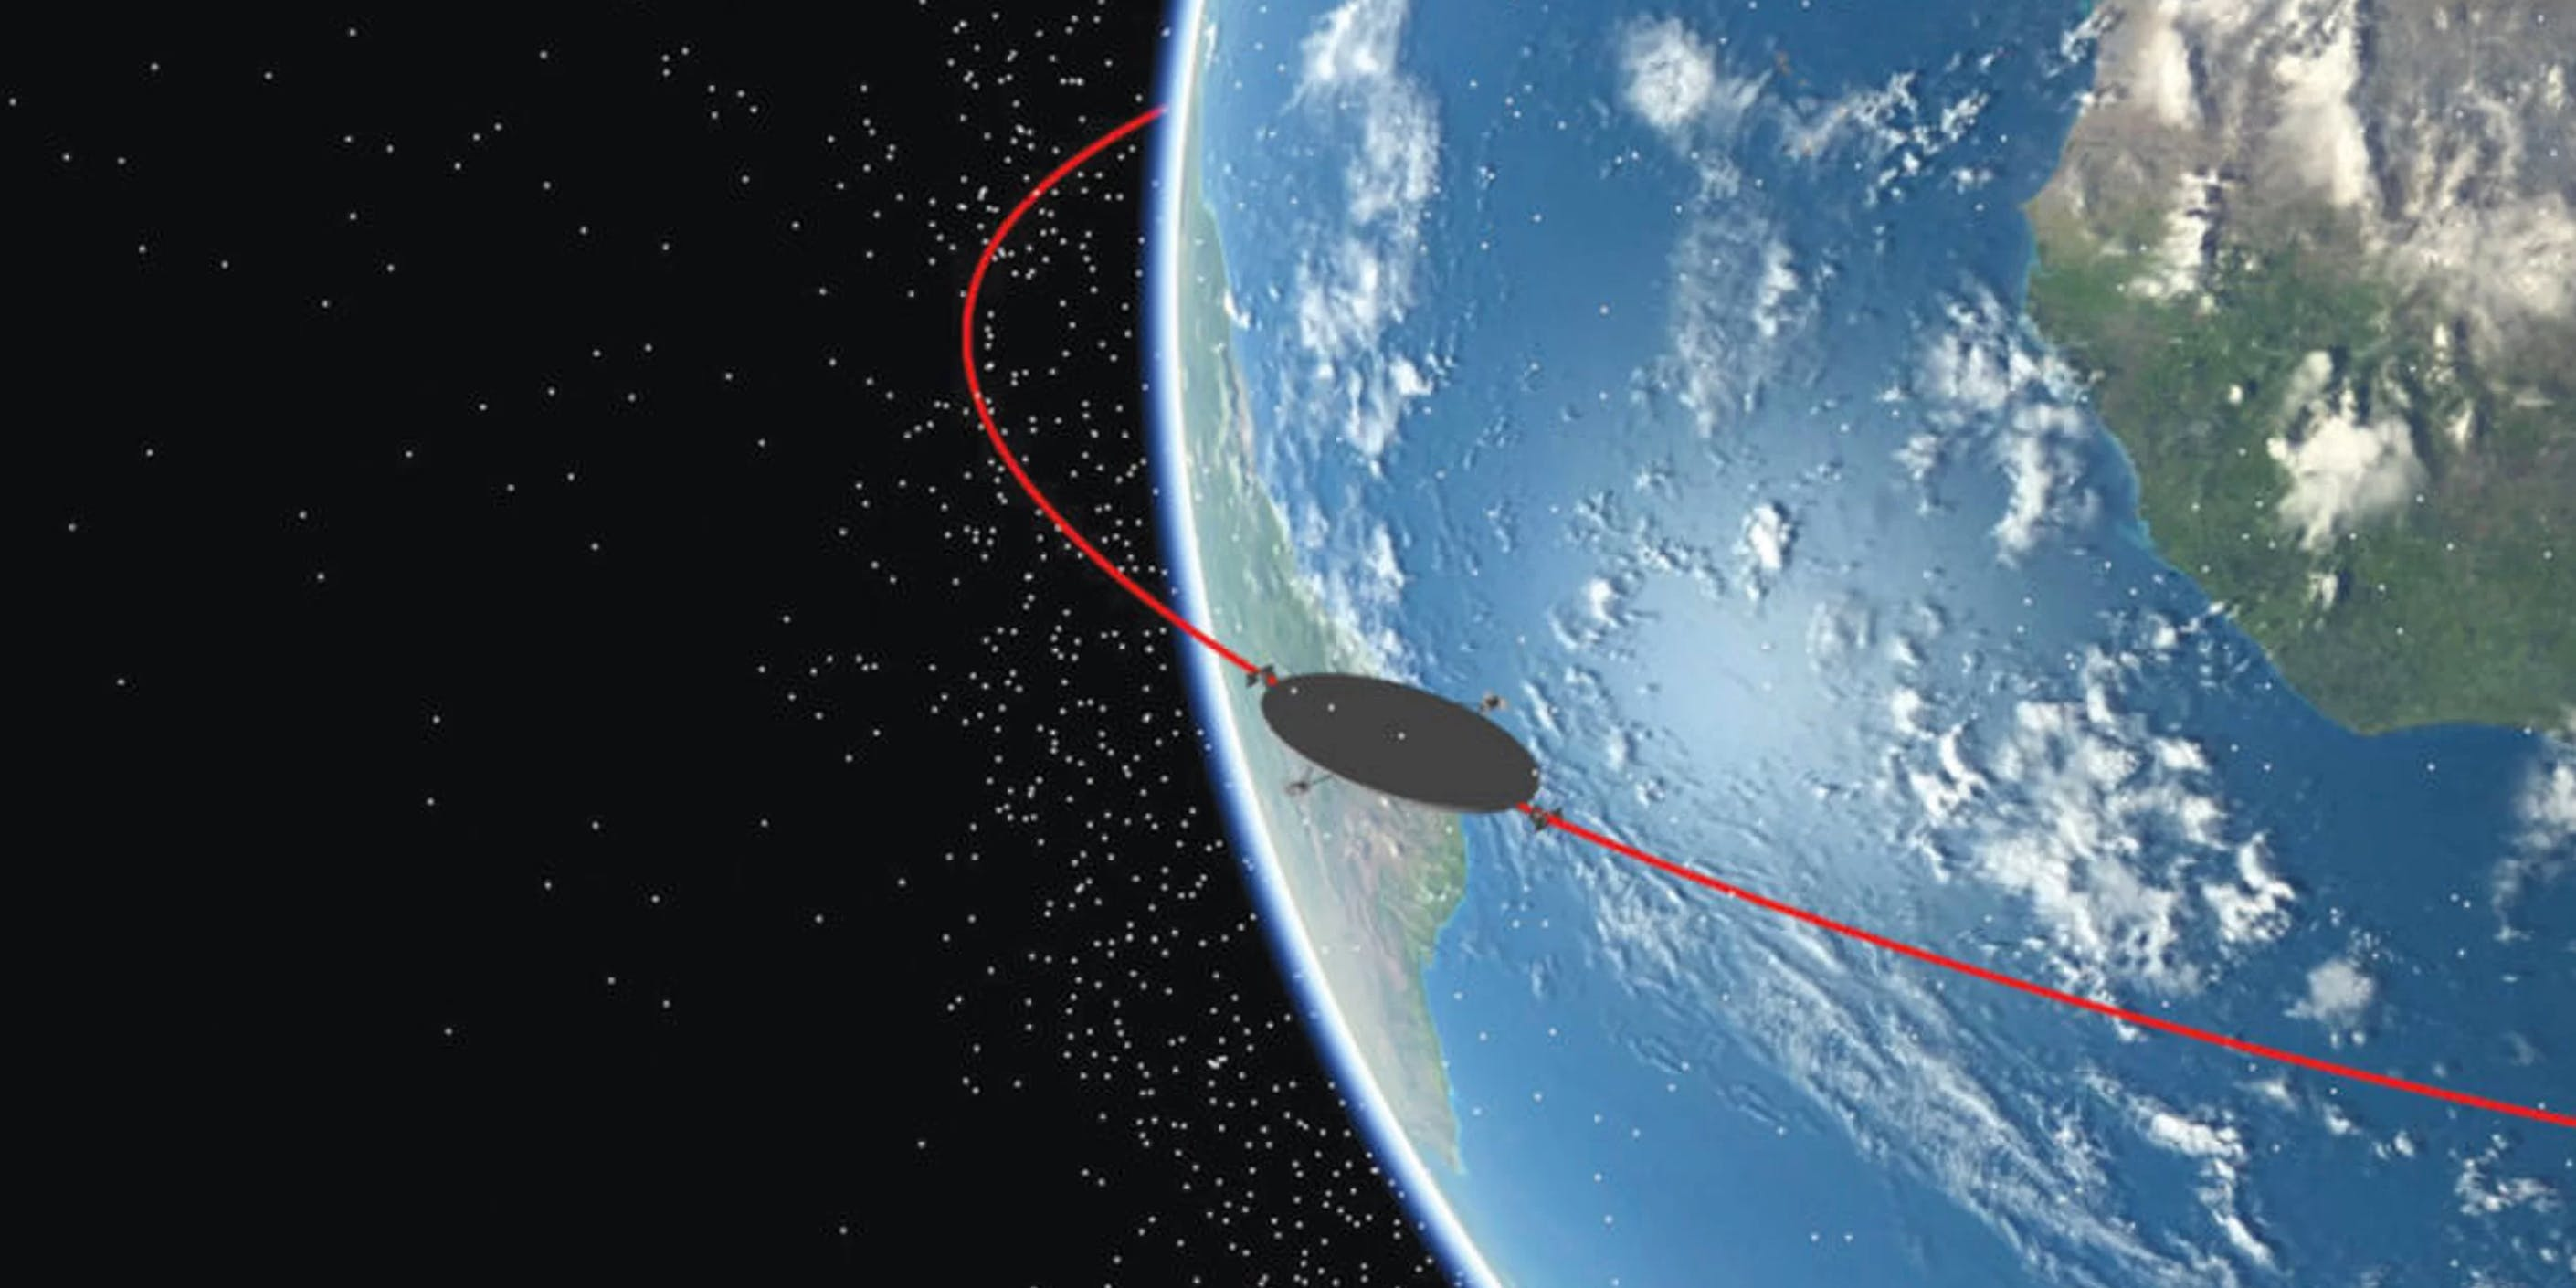 Launchspace Technologies has proposed this football field sized platform that would orbit Earth at the equator and collect debris as it goes. As a bonus, it would be able to detect and avoid satellites.